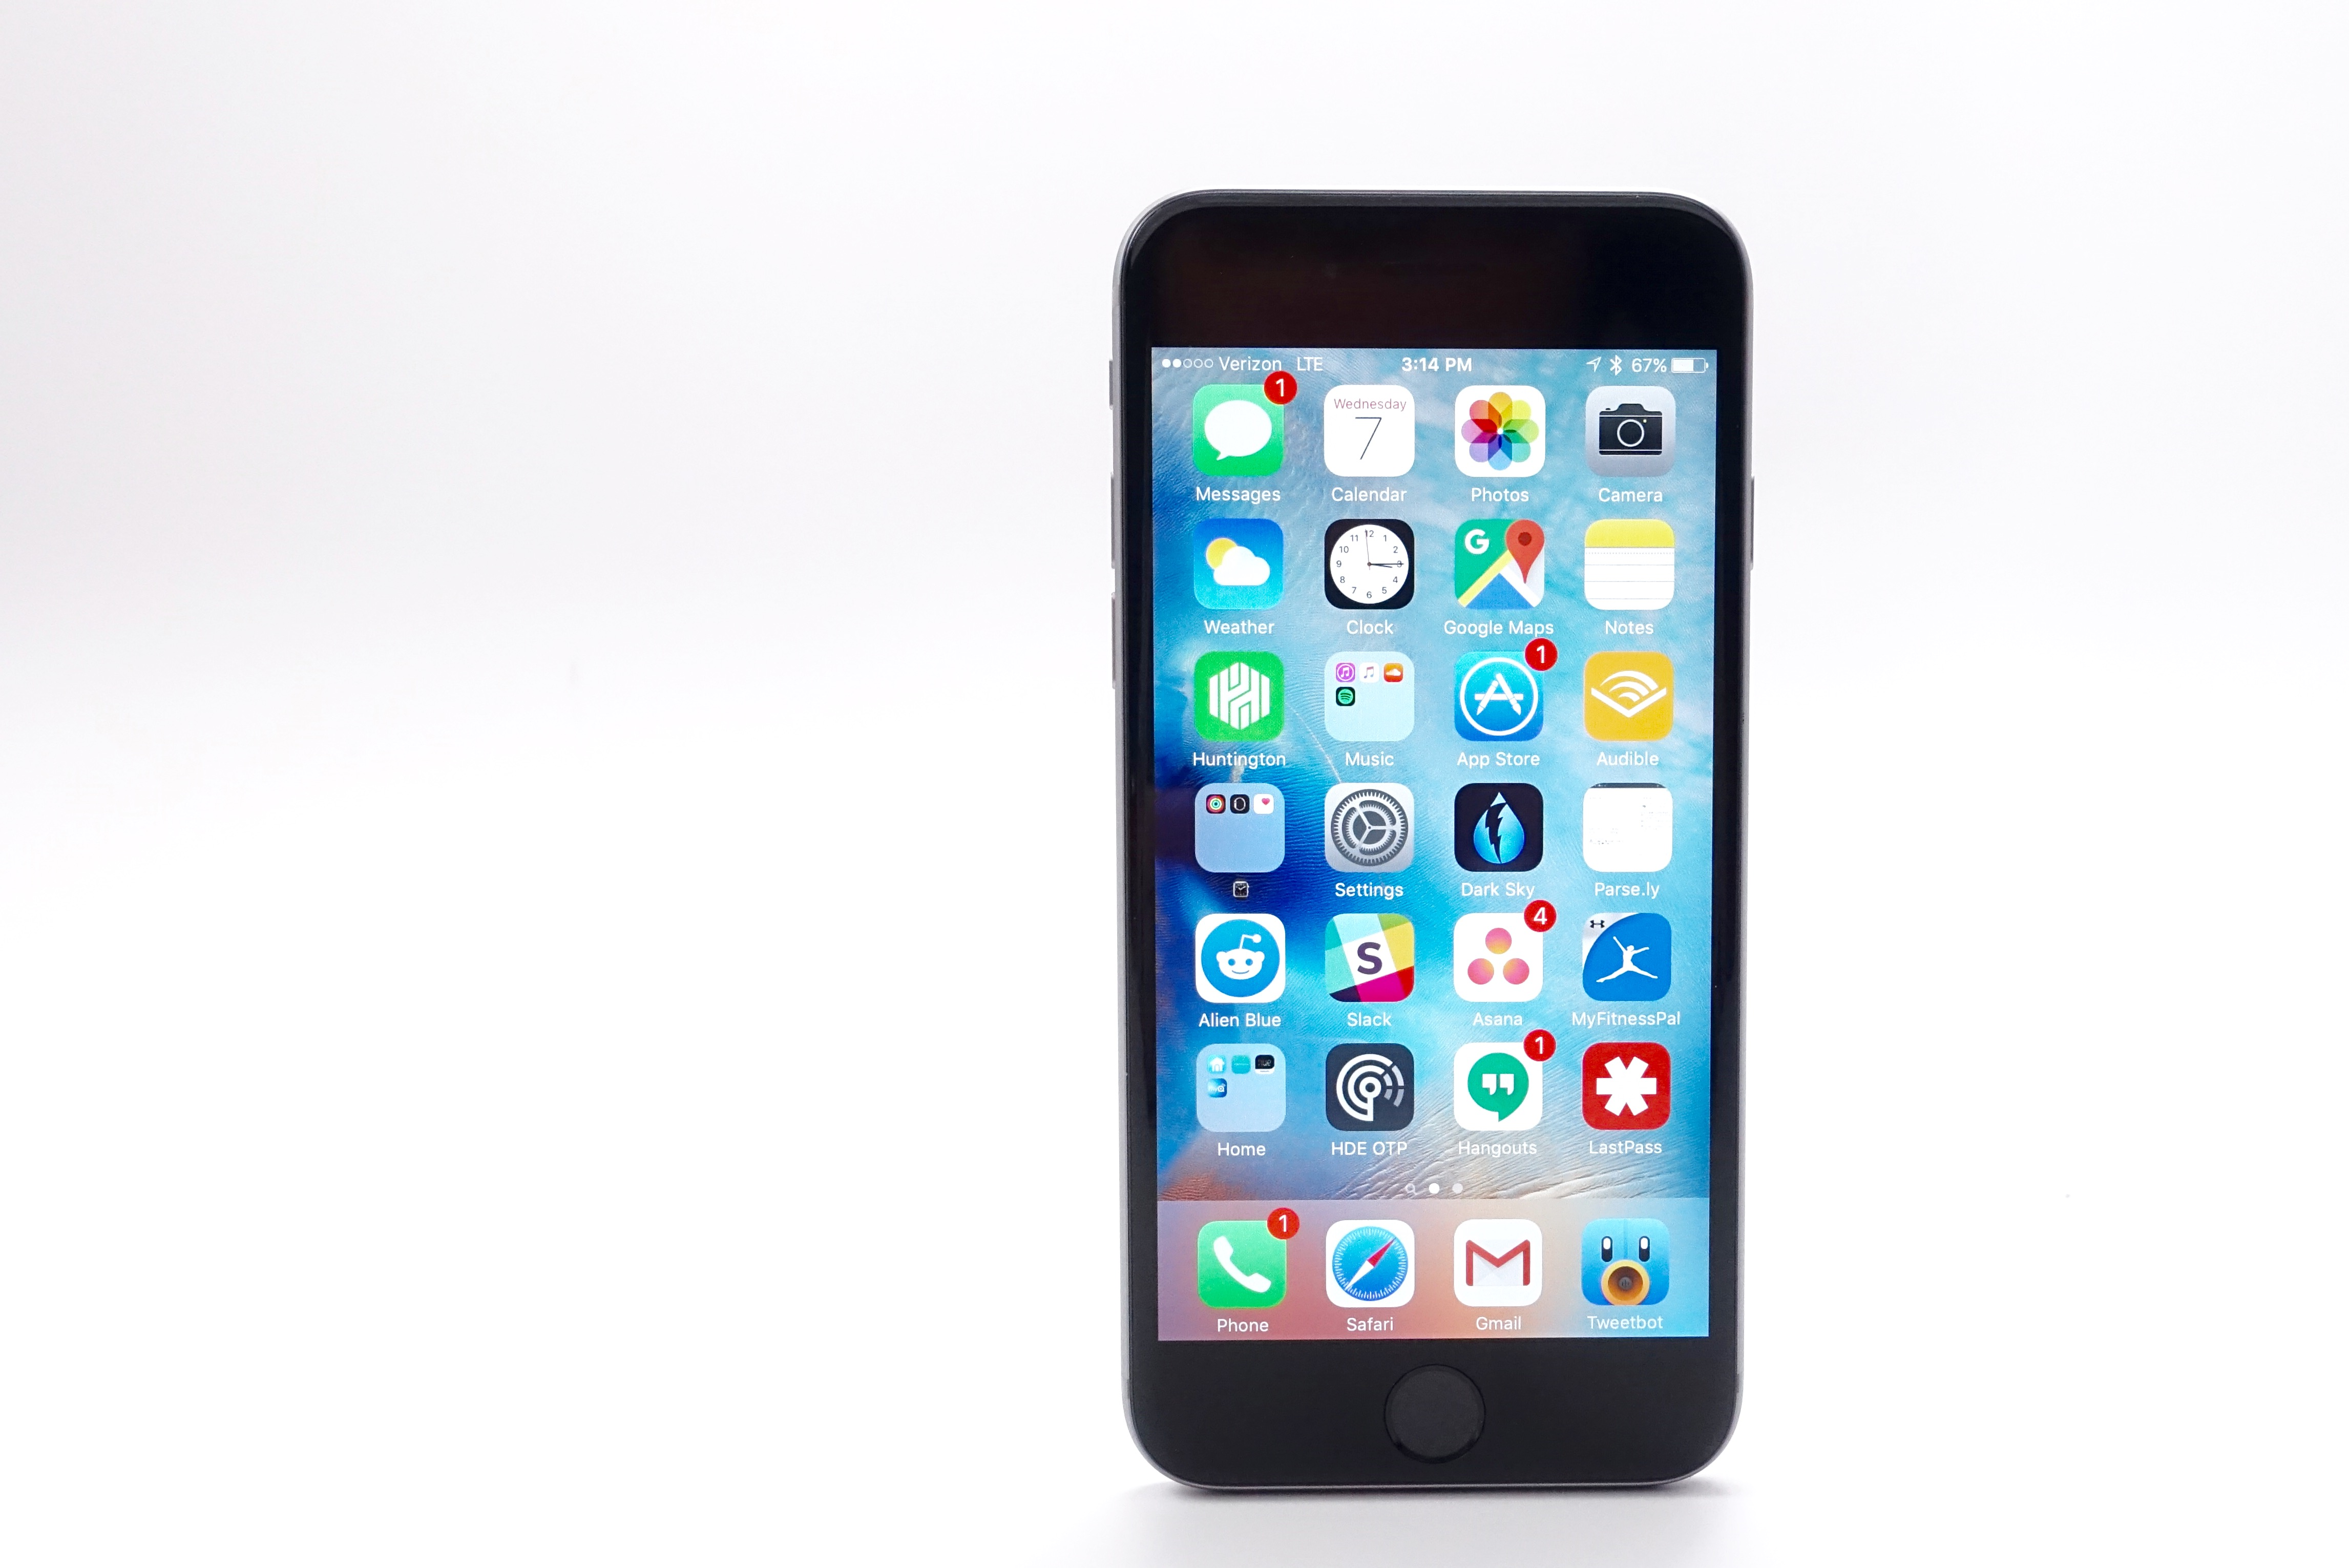 Here are the best iPhone apps to download in 2016.